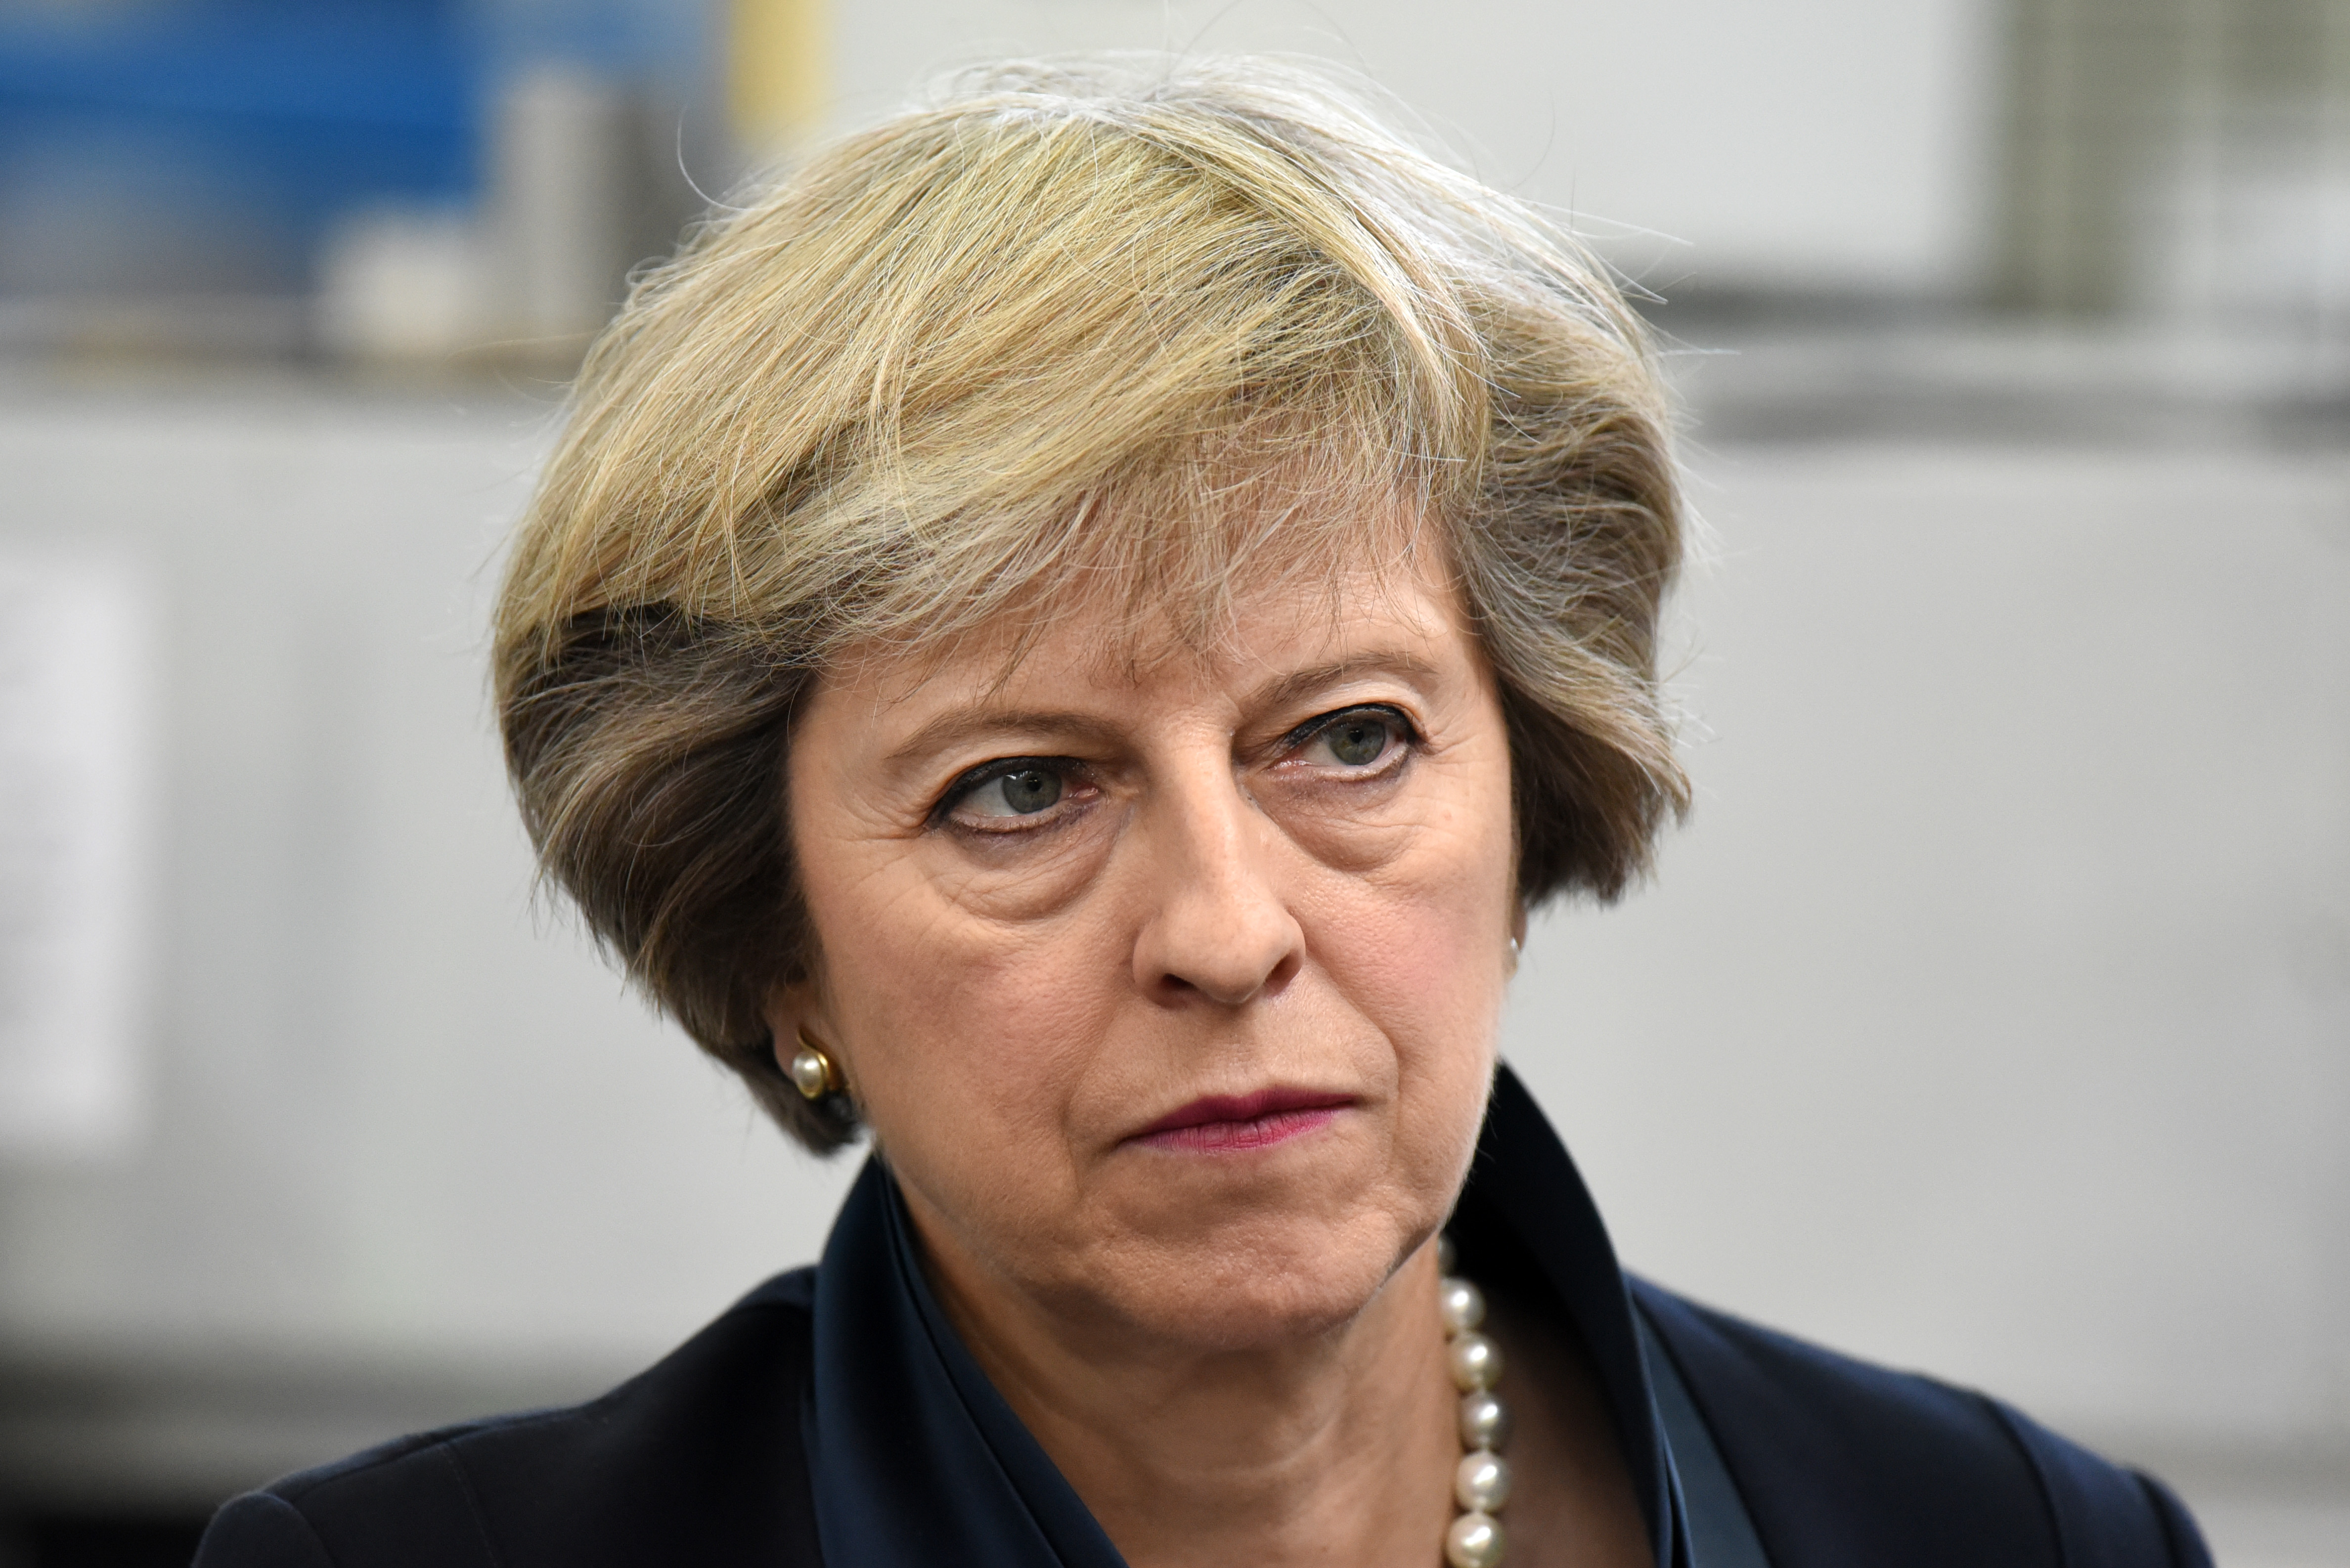 British Prime Minister Theresa May looks on during a visit to the Warwick Manufacturing Group facility at the University of Warwick on Sept. 1, 2016 in Solihull, England. Mrs May used the visit to highlight that Britain continues to be open for economic investment following the country's decision to leave the European Union.